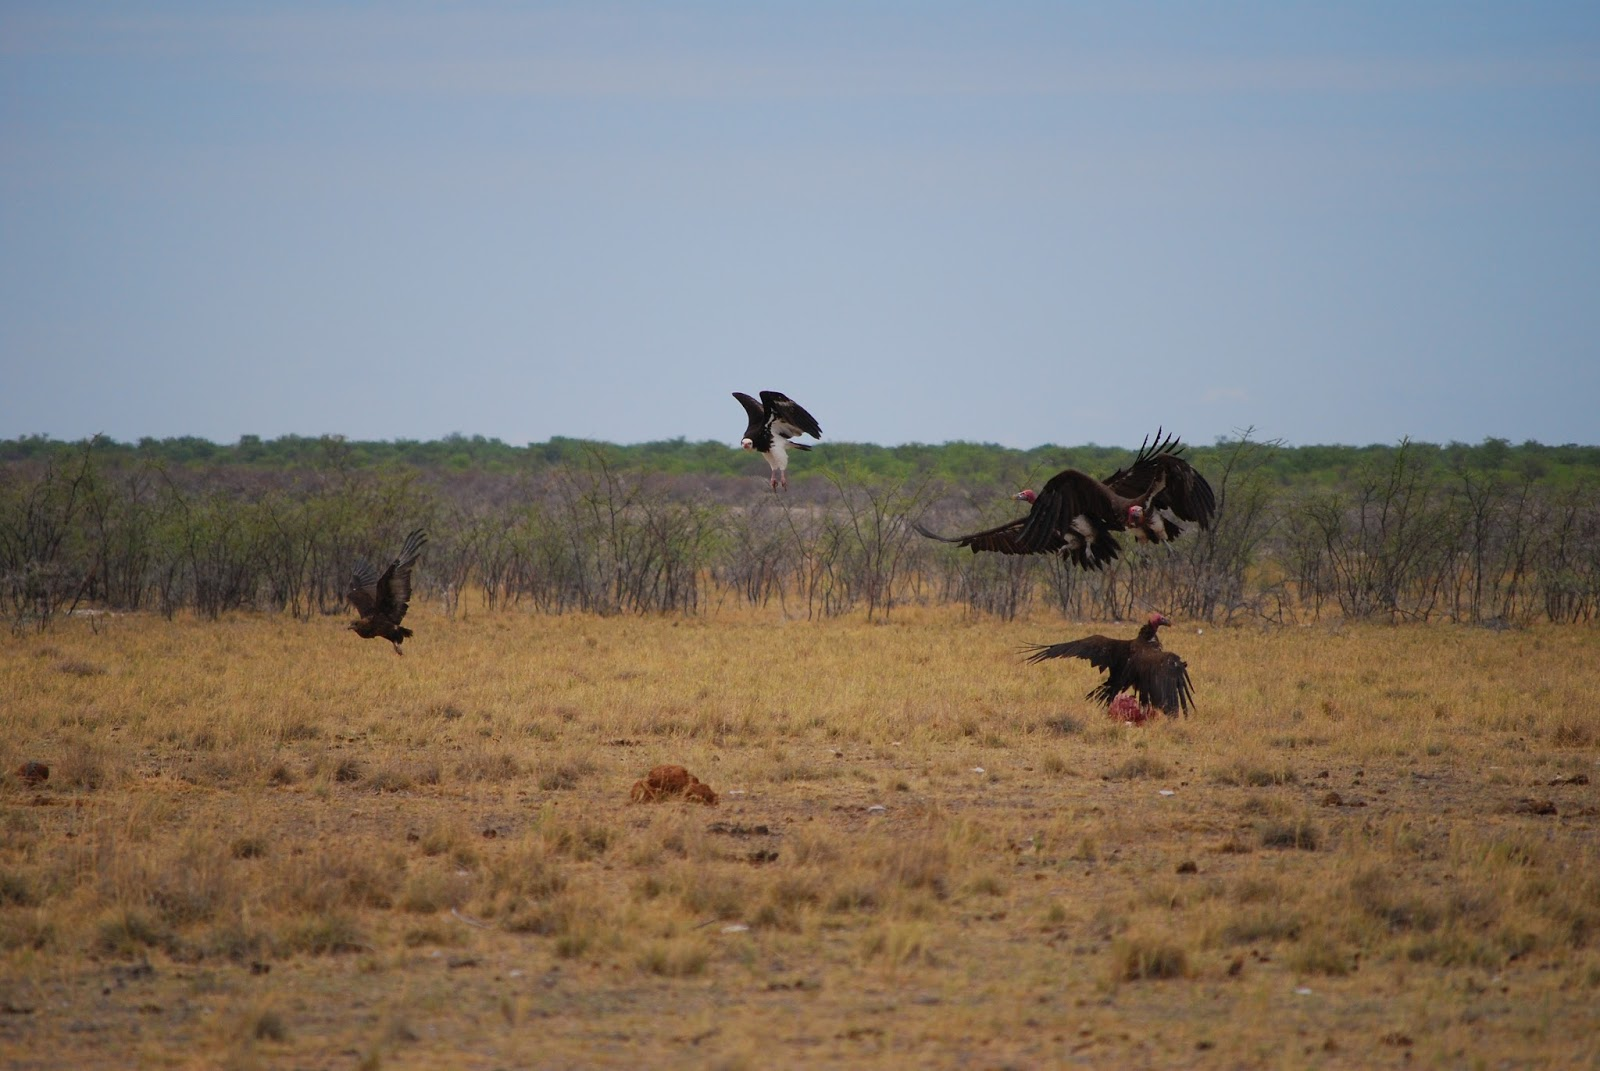 A group of vultures finding a carcass.